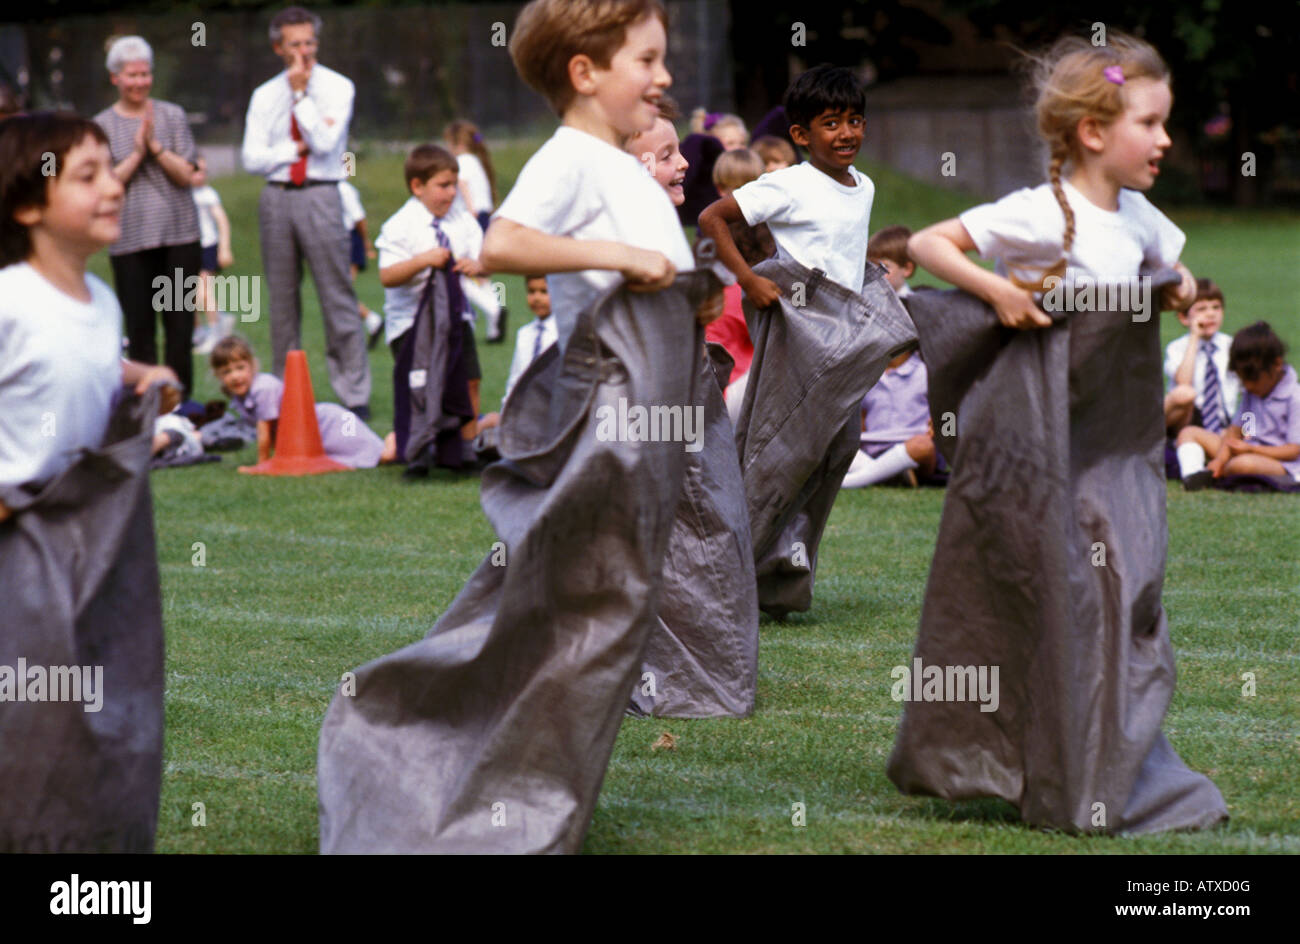 Children taking part in Sports day sack race at end of year sports day - Stock Image